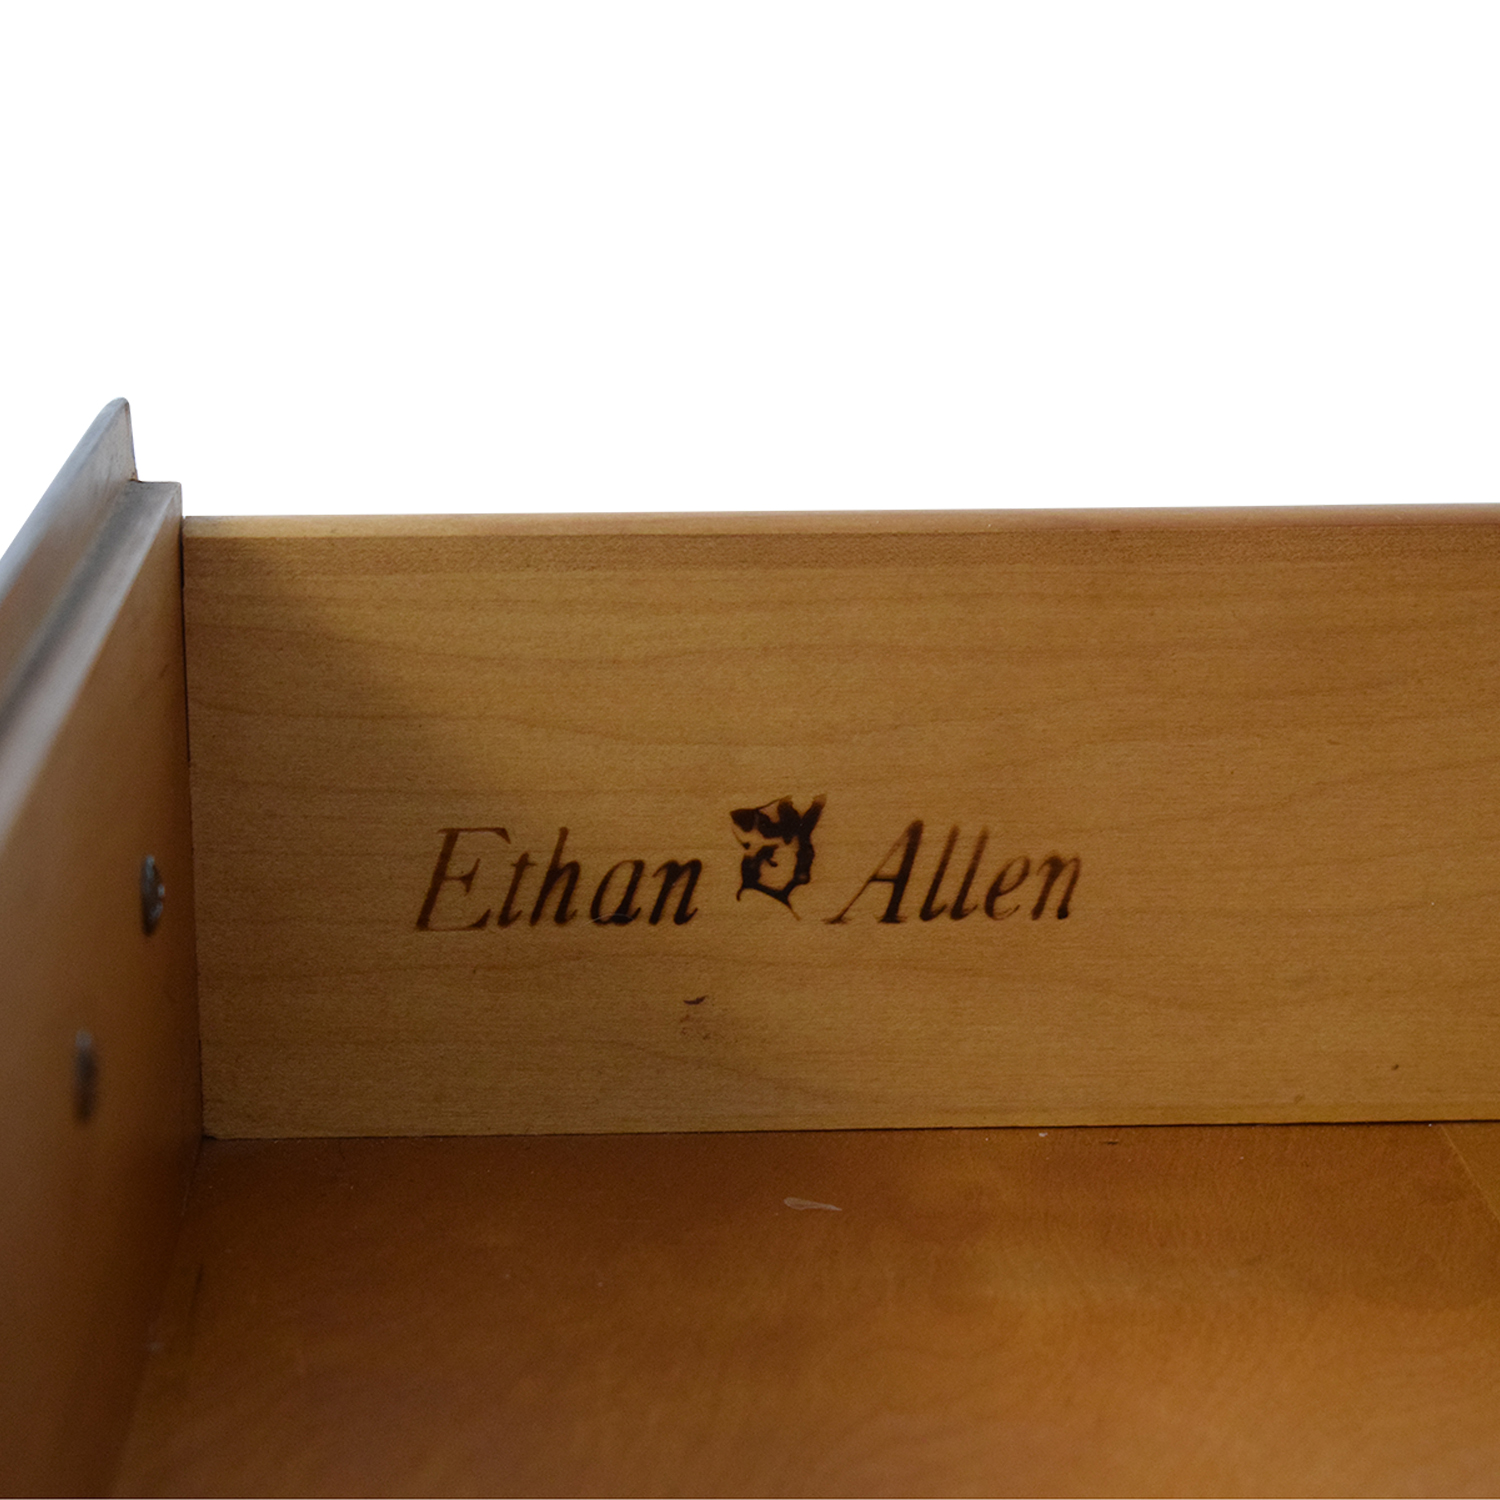 Ethan Allen Ethan Allen Bookcase with Drawers coupon